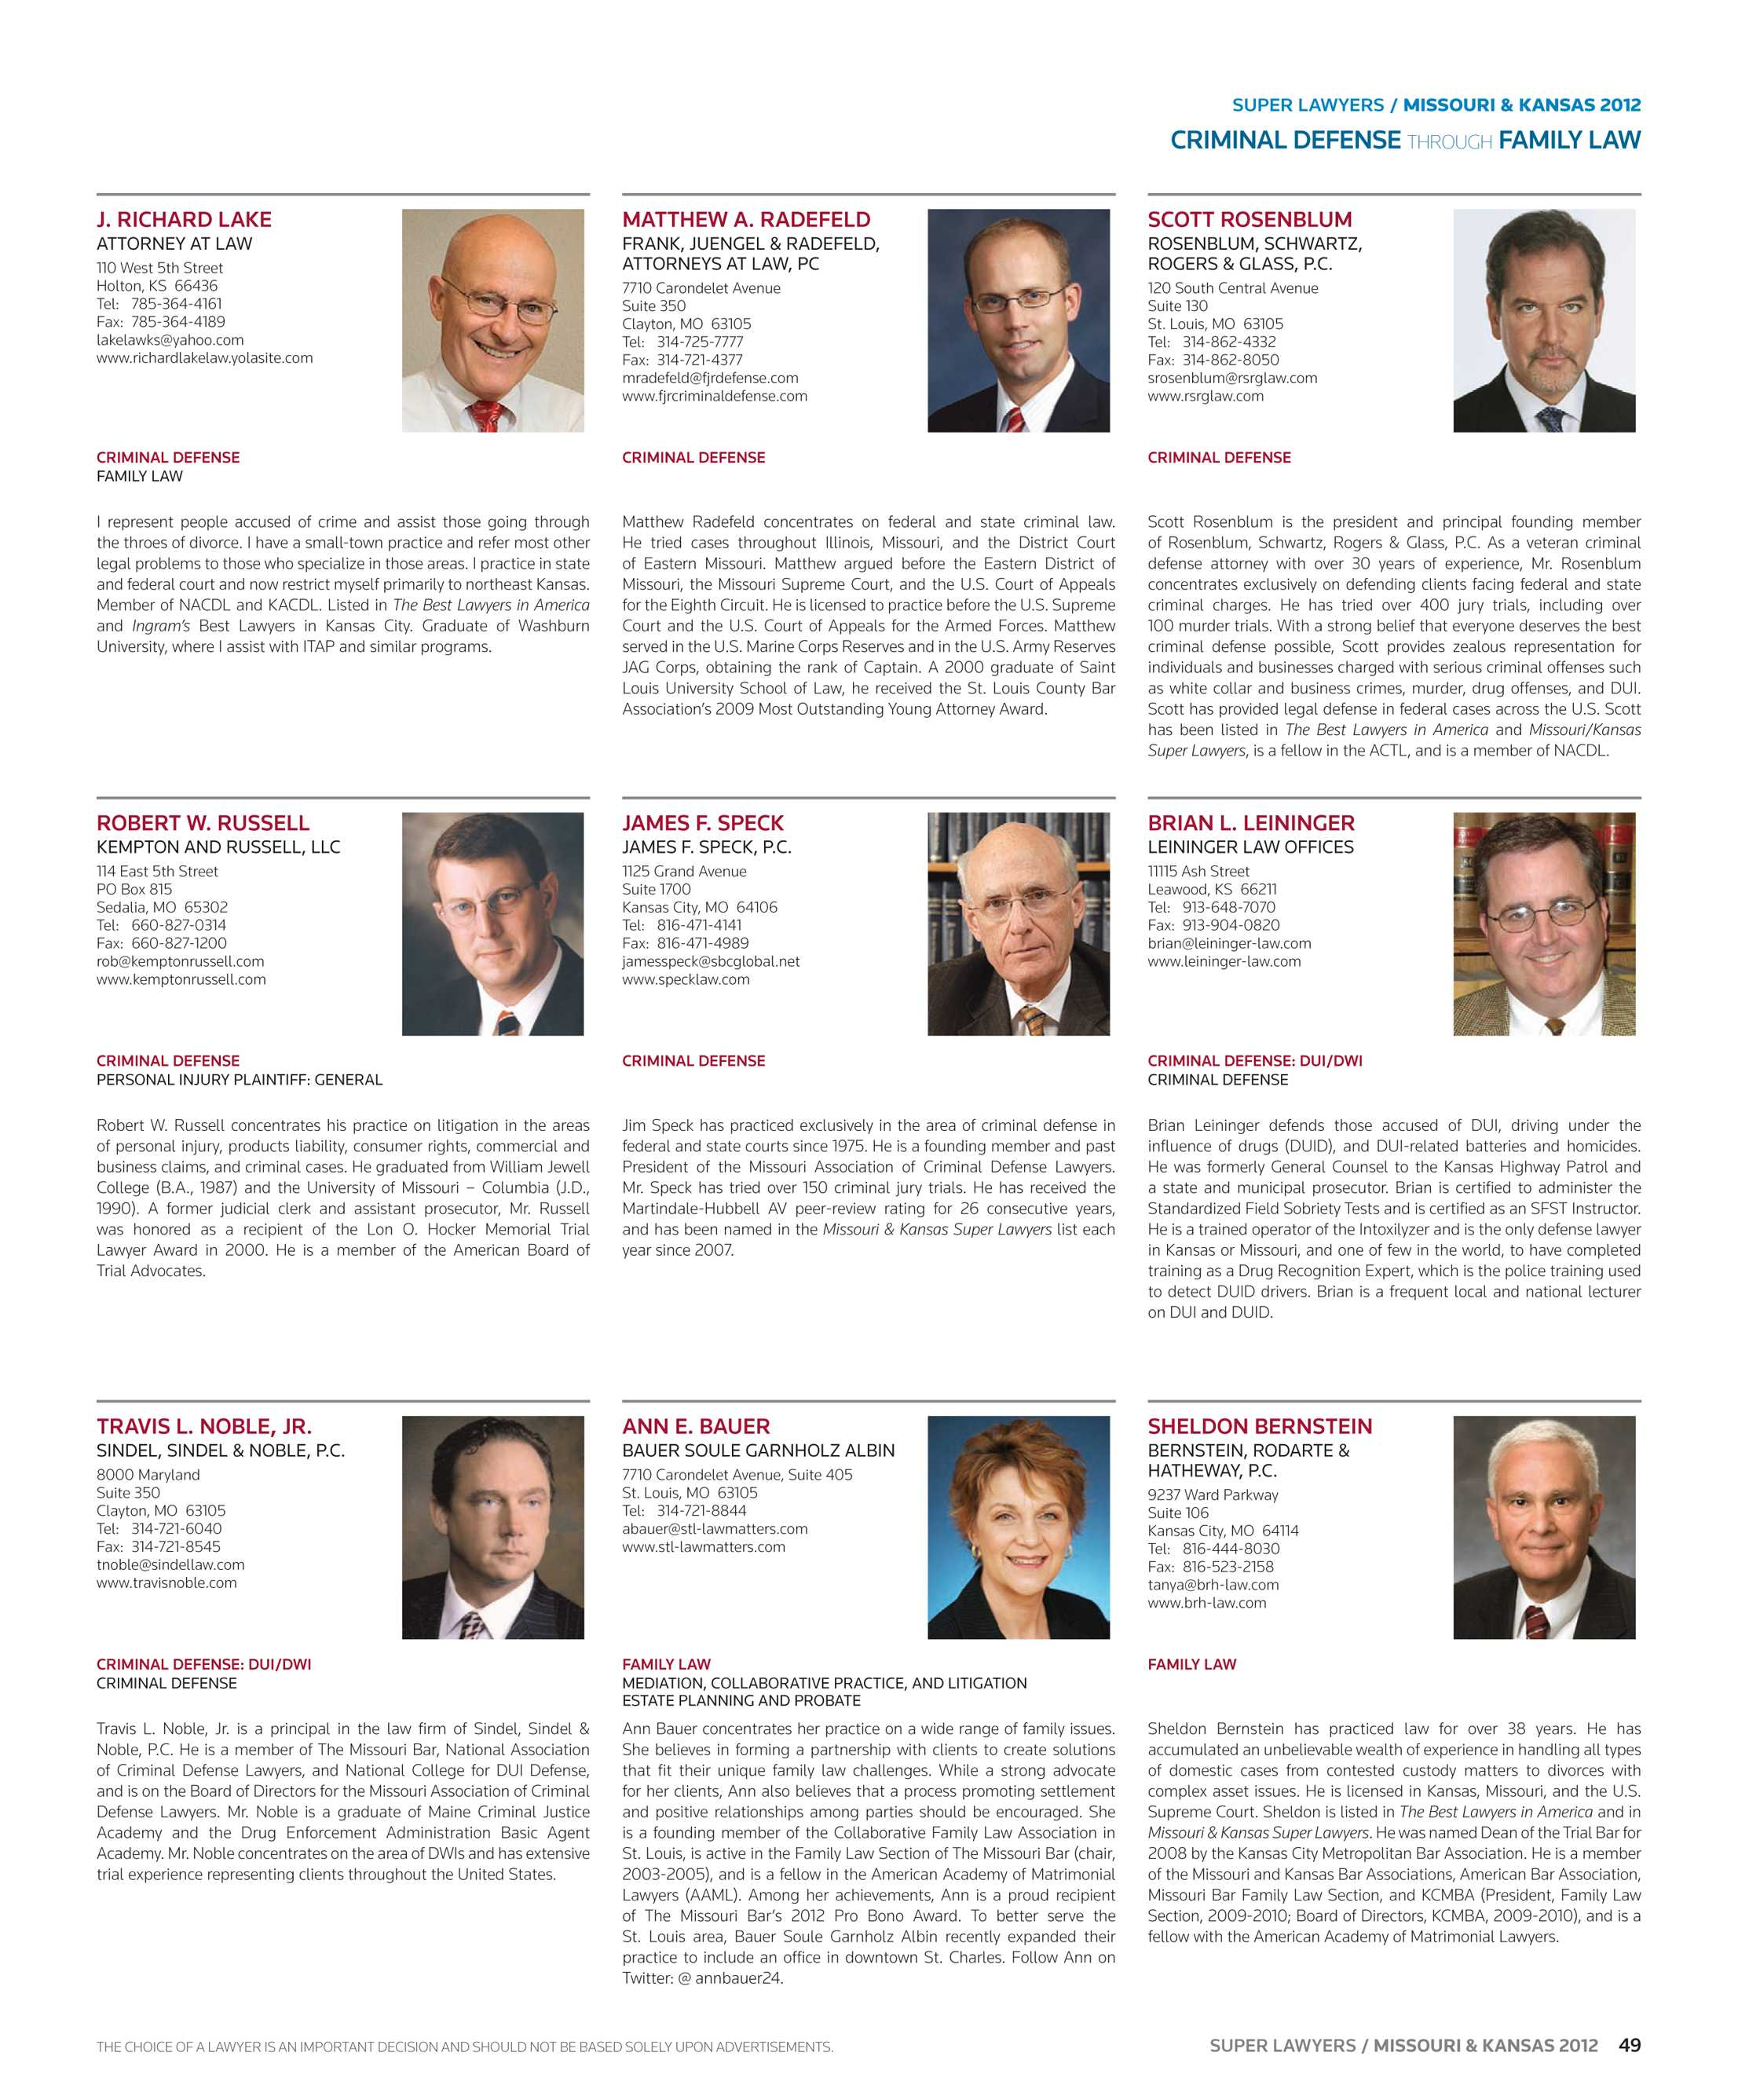 Super Lawyers - Missouri & Kansas 2012 - page 49